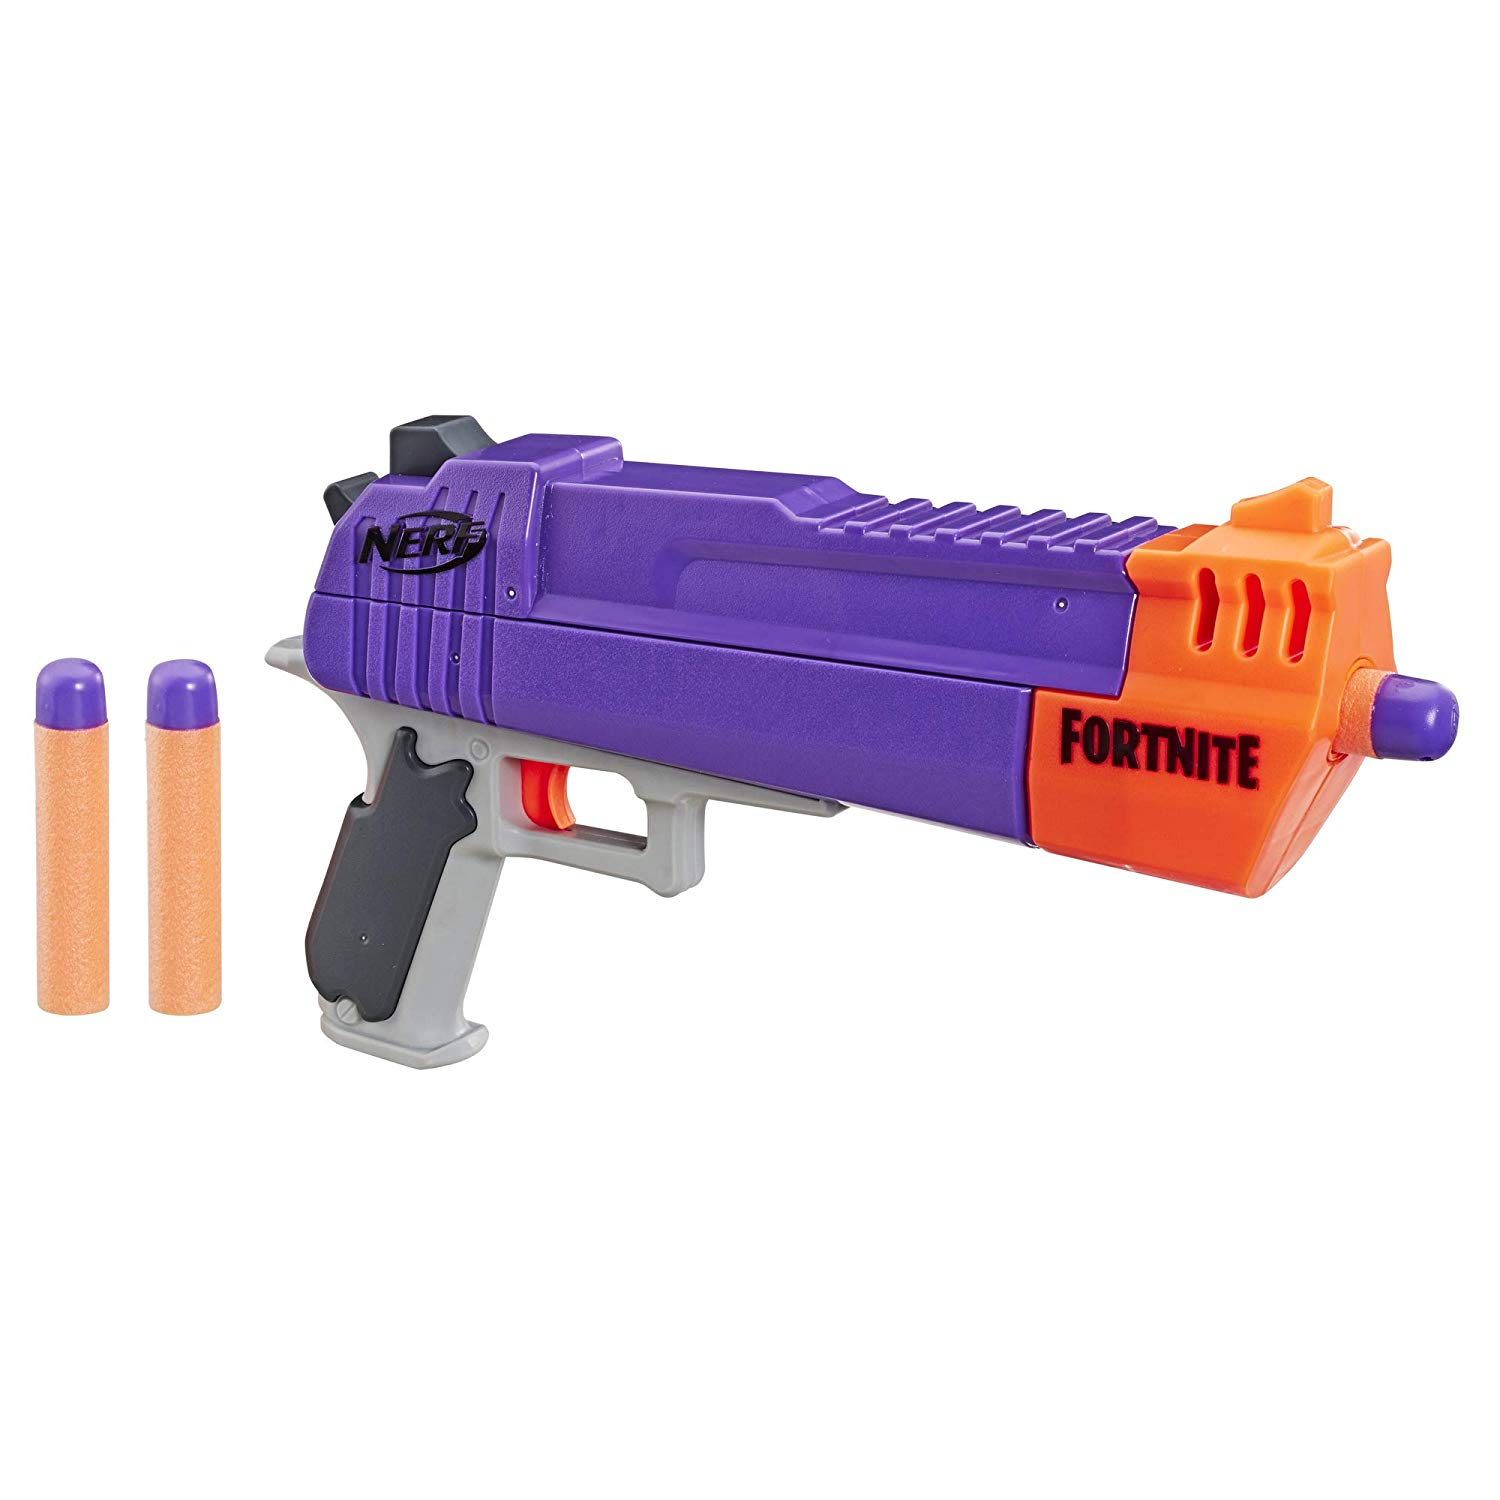 Where to buy NERF Fortnite Blaster HC-E Mega